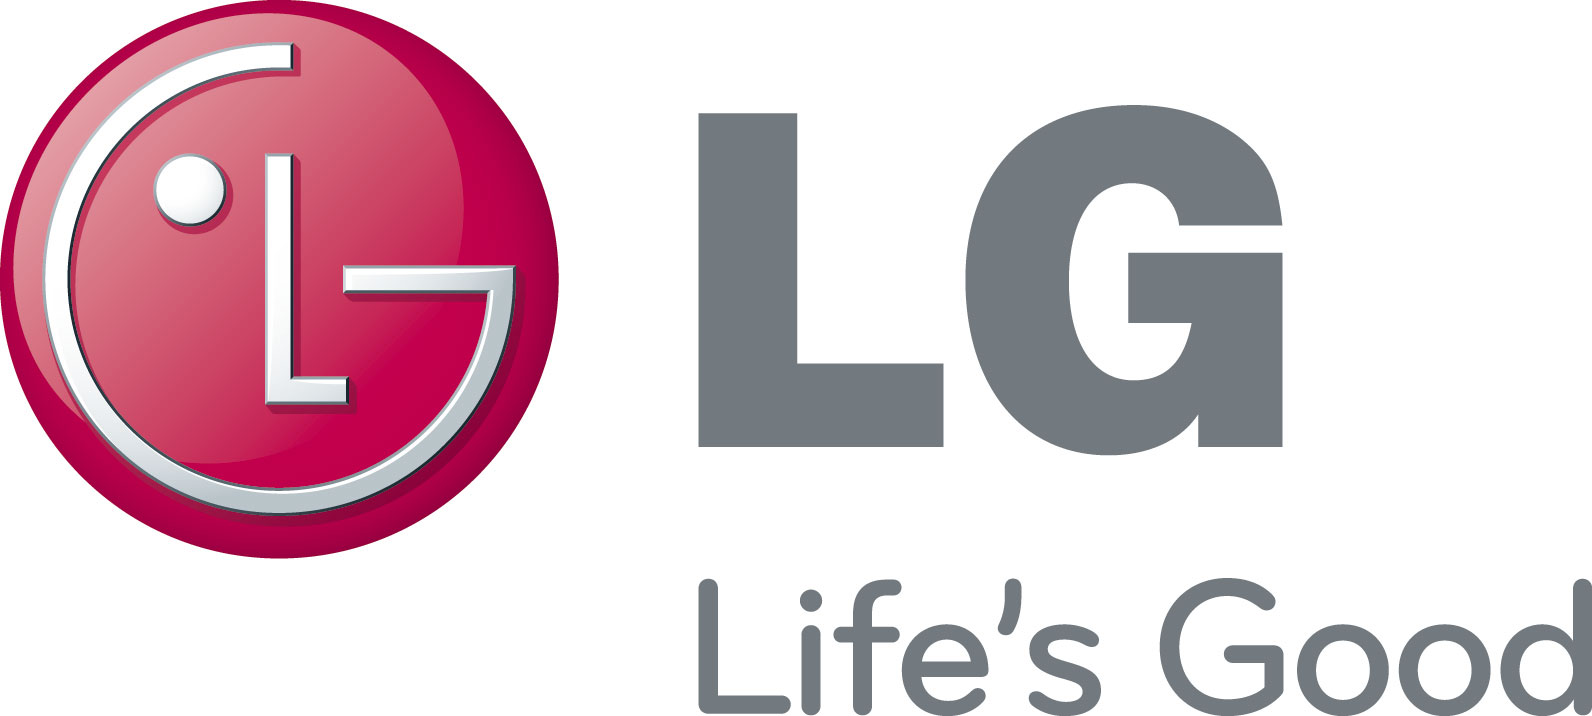 lg suppliers image